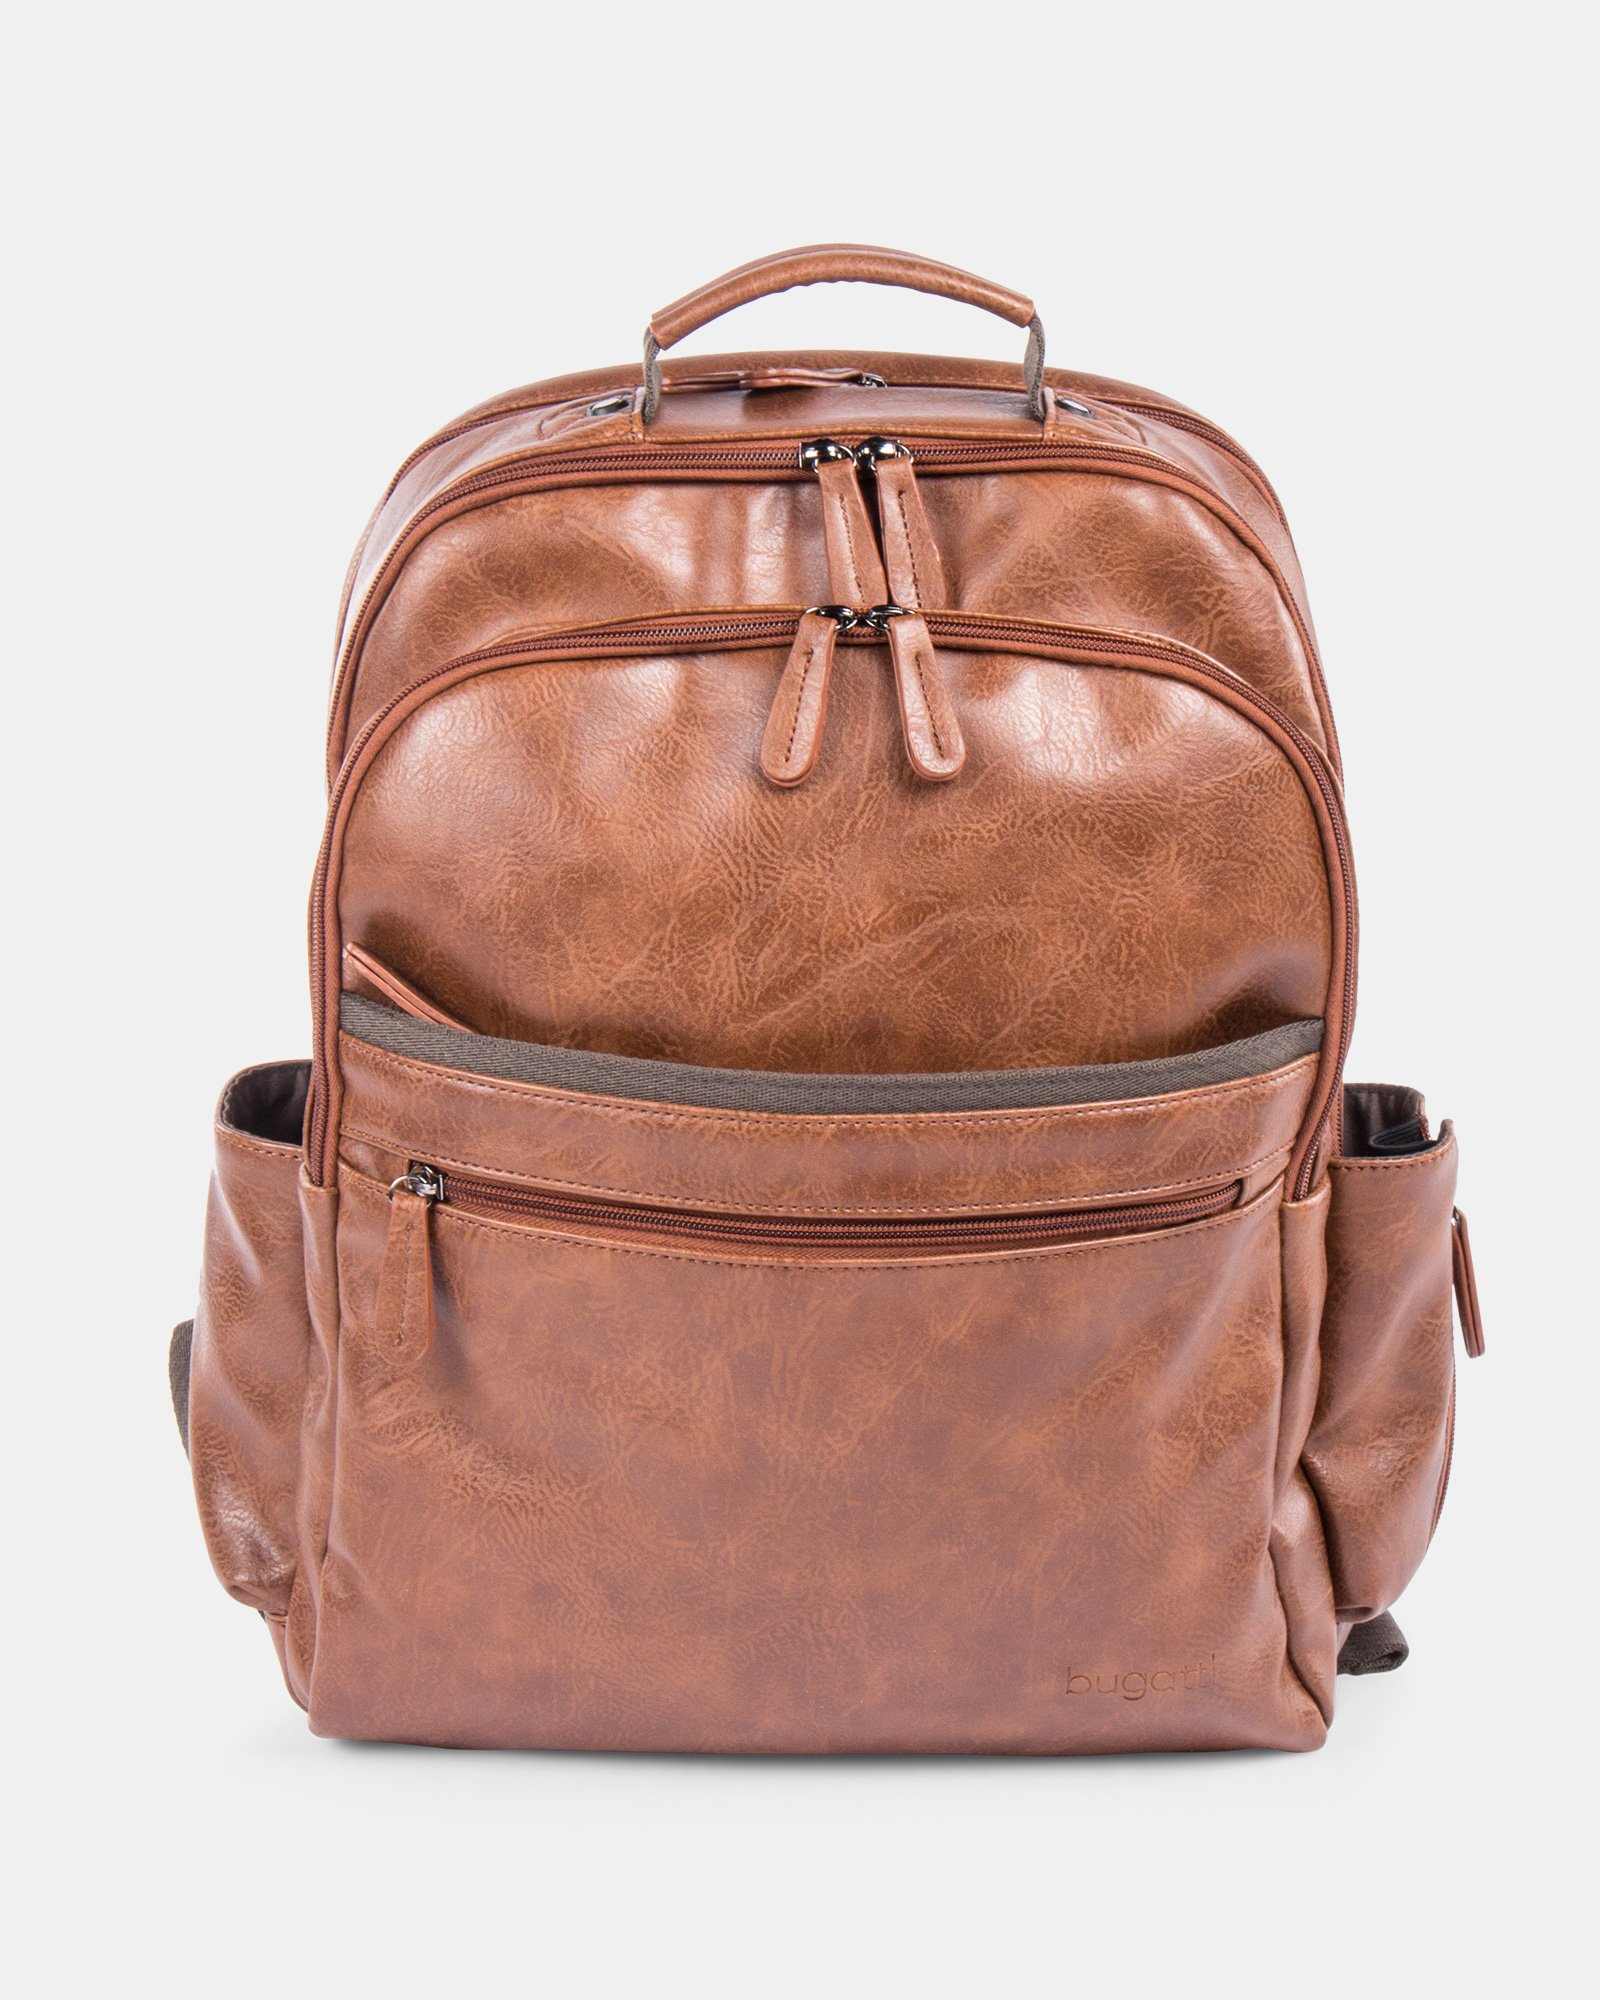 VALENTINO - BACKPACK FOR 15.6 IN LAPTOP AND RFID PROTECTION - COGNAC - Bugatti - Zoom